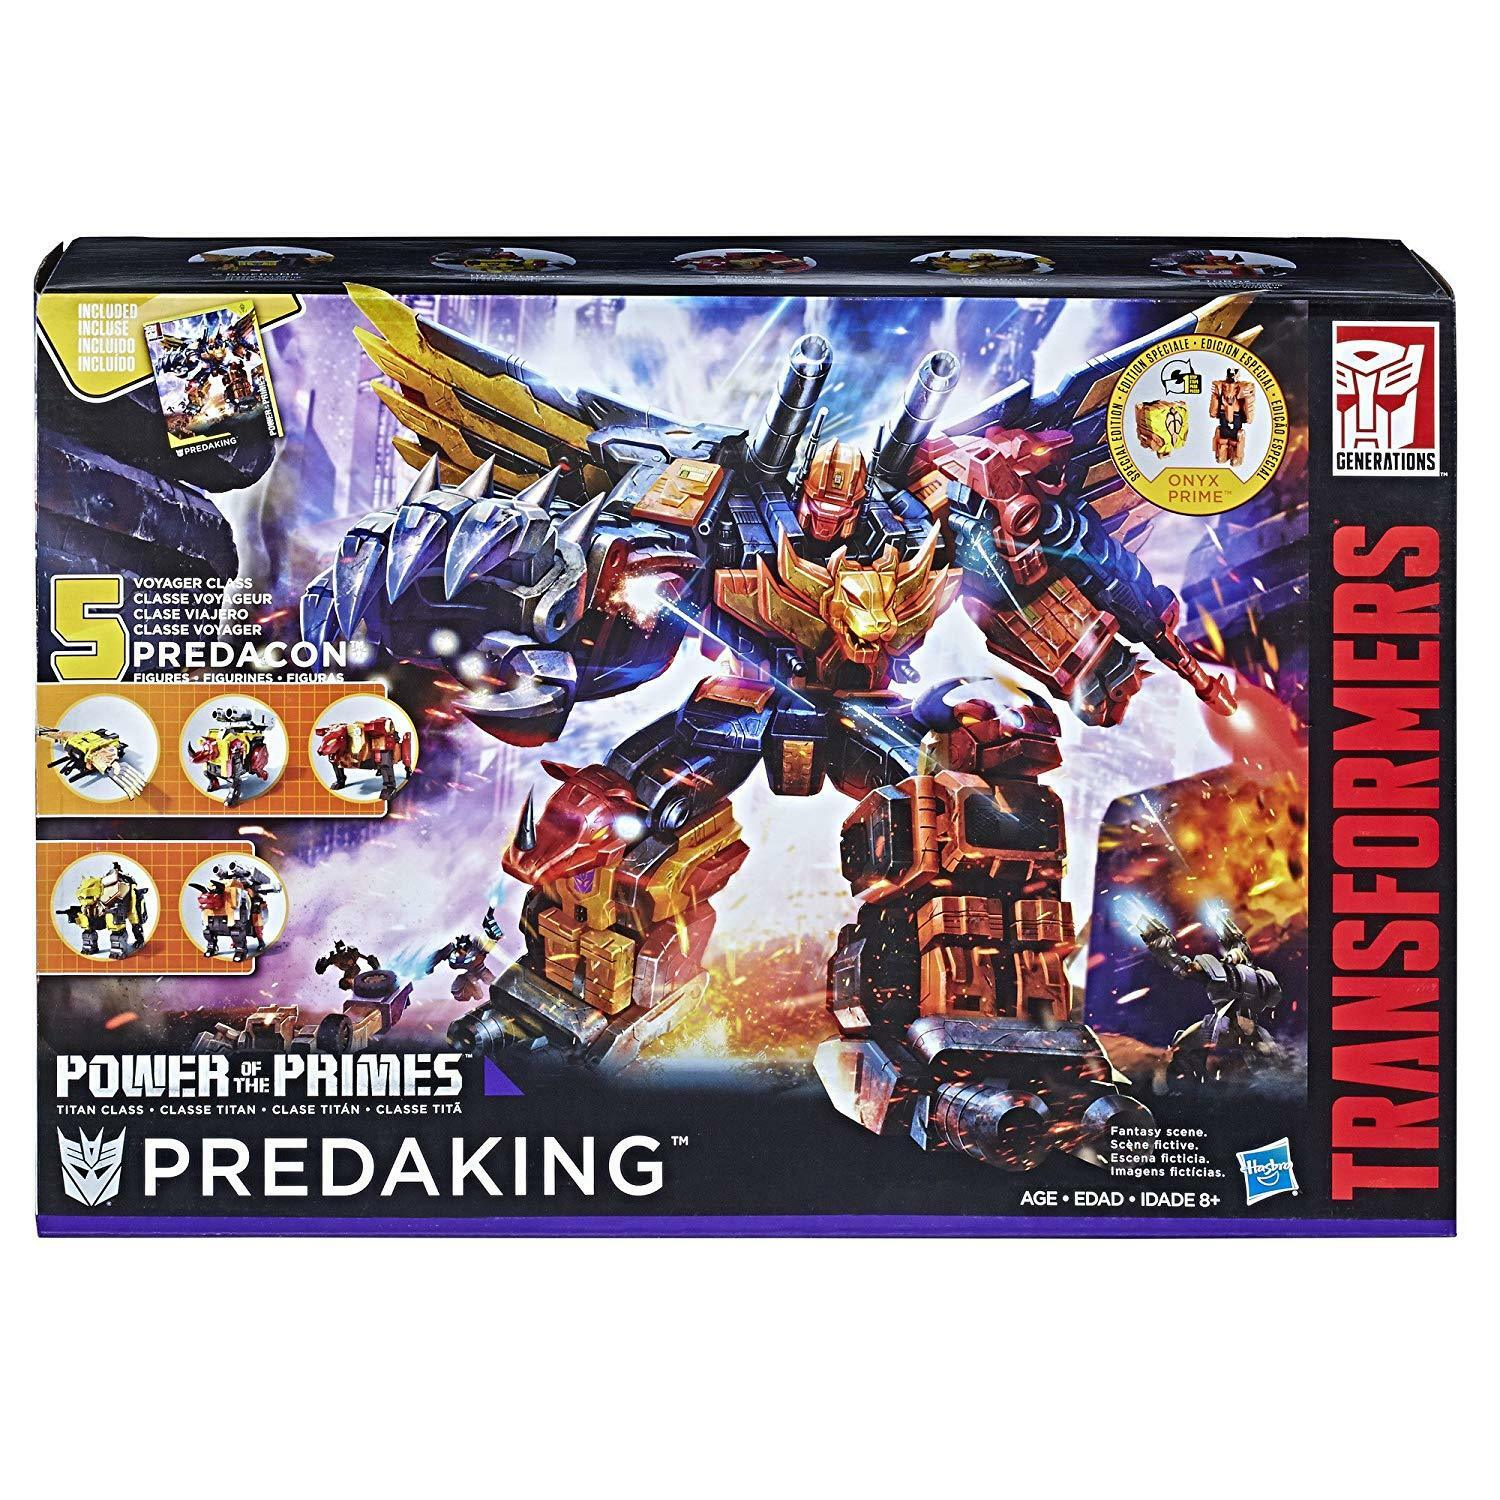 TRANSFORMERS GENERATIONS POWER OF THE PRIMES TITAN CLASS ProssoAKING ACTION FIGURE